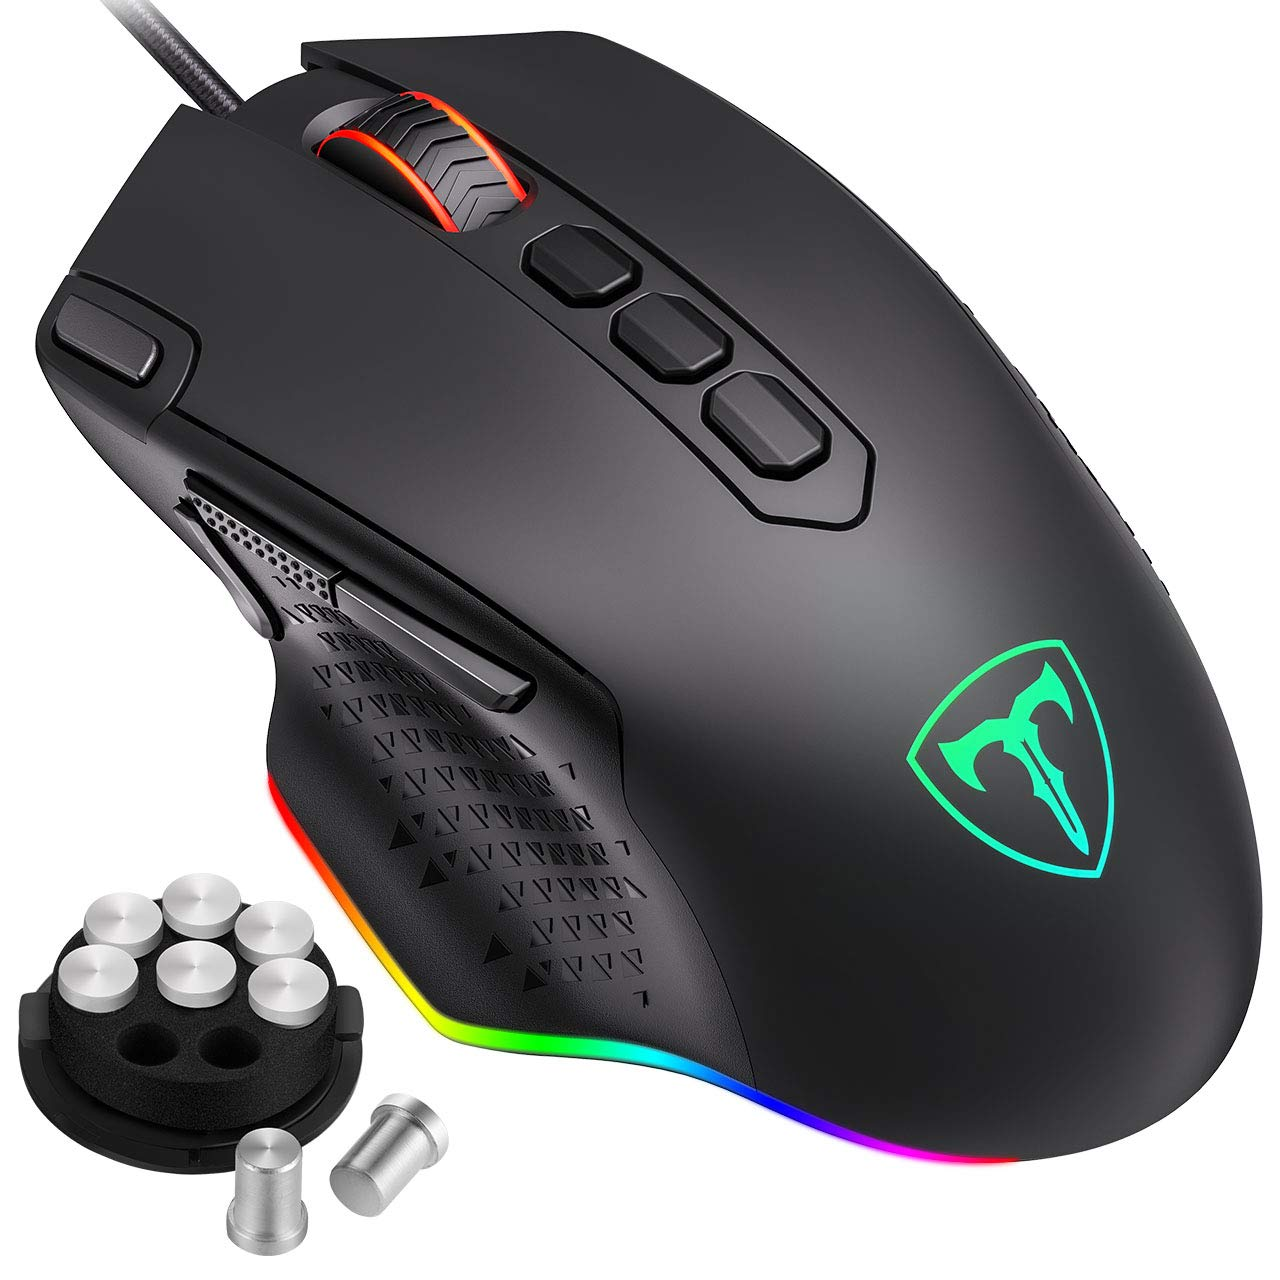 PICTEK RGB Gaming Mouse, Wired Mouse Gaming with Weight Tuning Set in the Mouse, Fire & Sniper Button, 10 Programmable Buttons, 12000 DPI, Computer Mouse for Laptop, USB Mouse with 1.5m cable for Windows PC Gamer